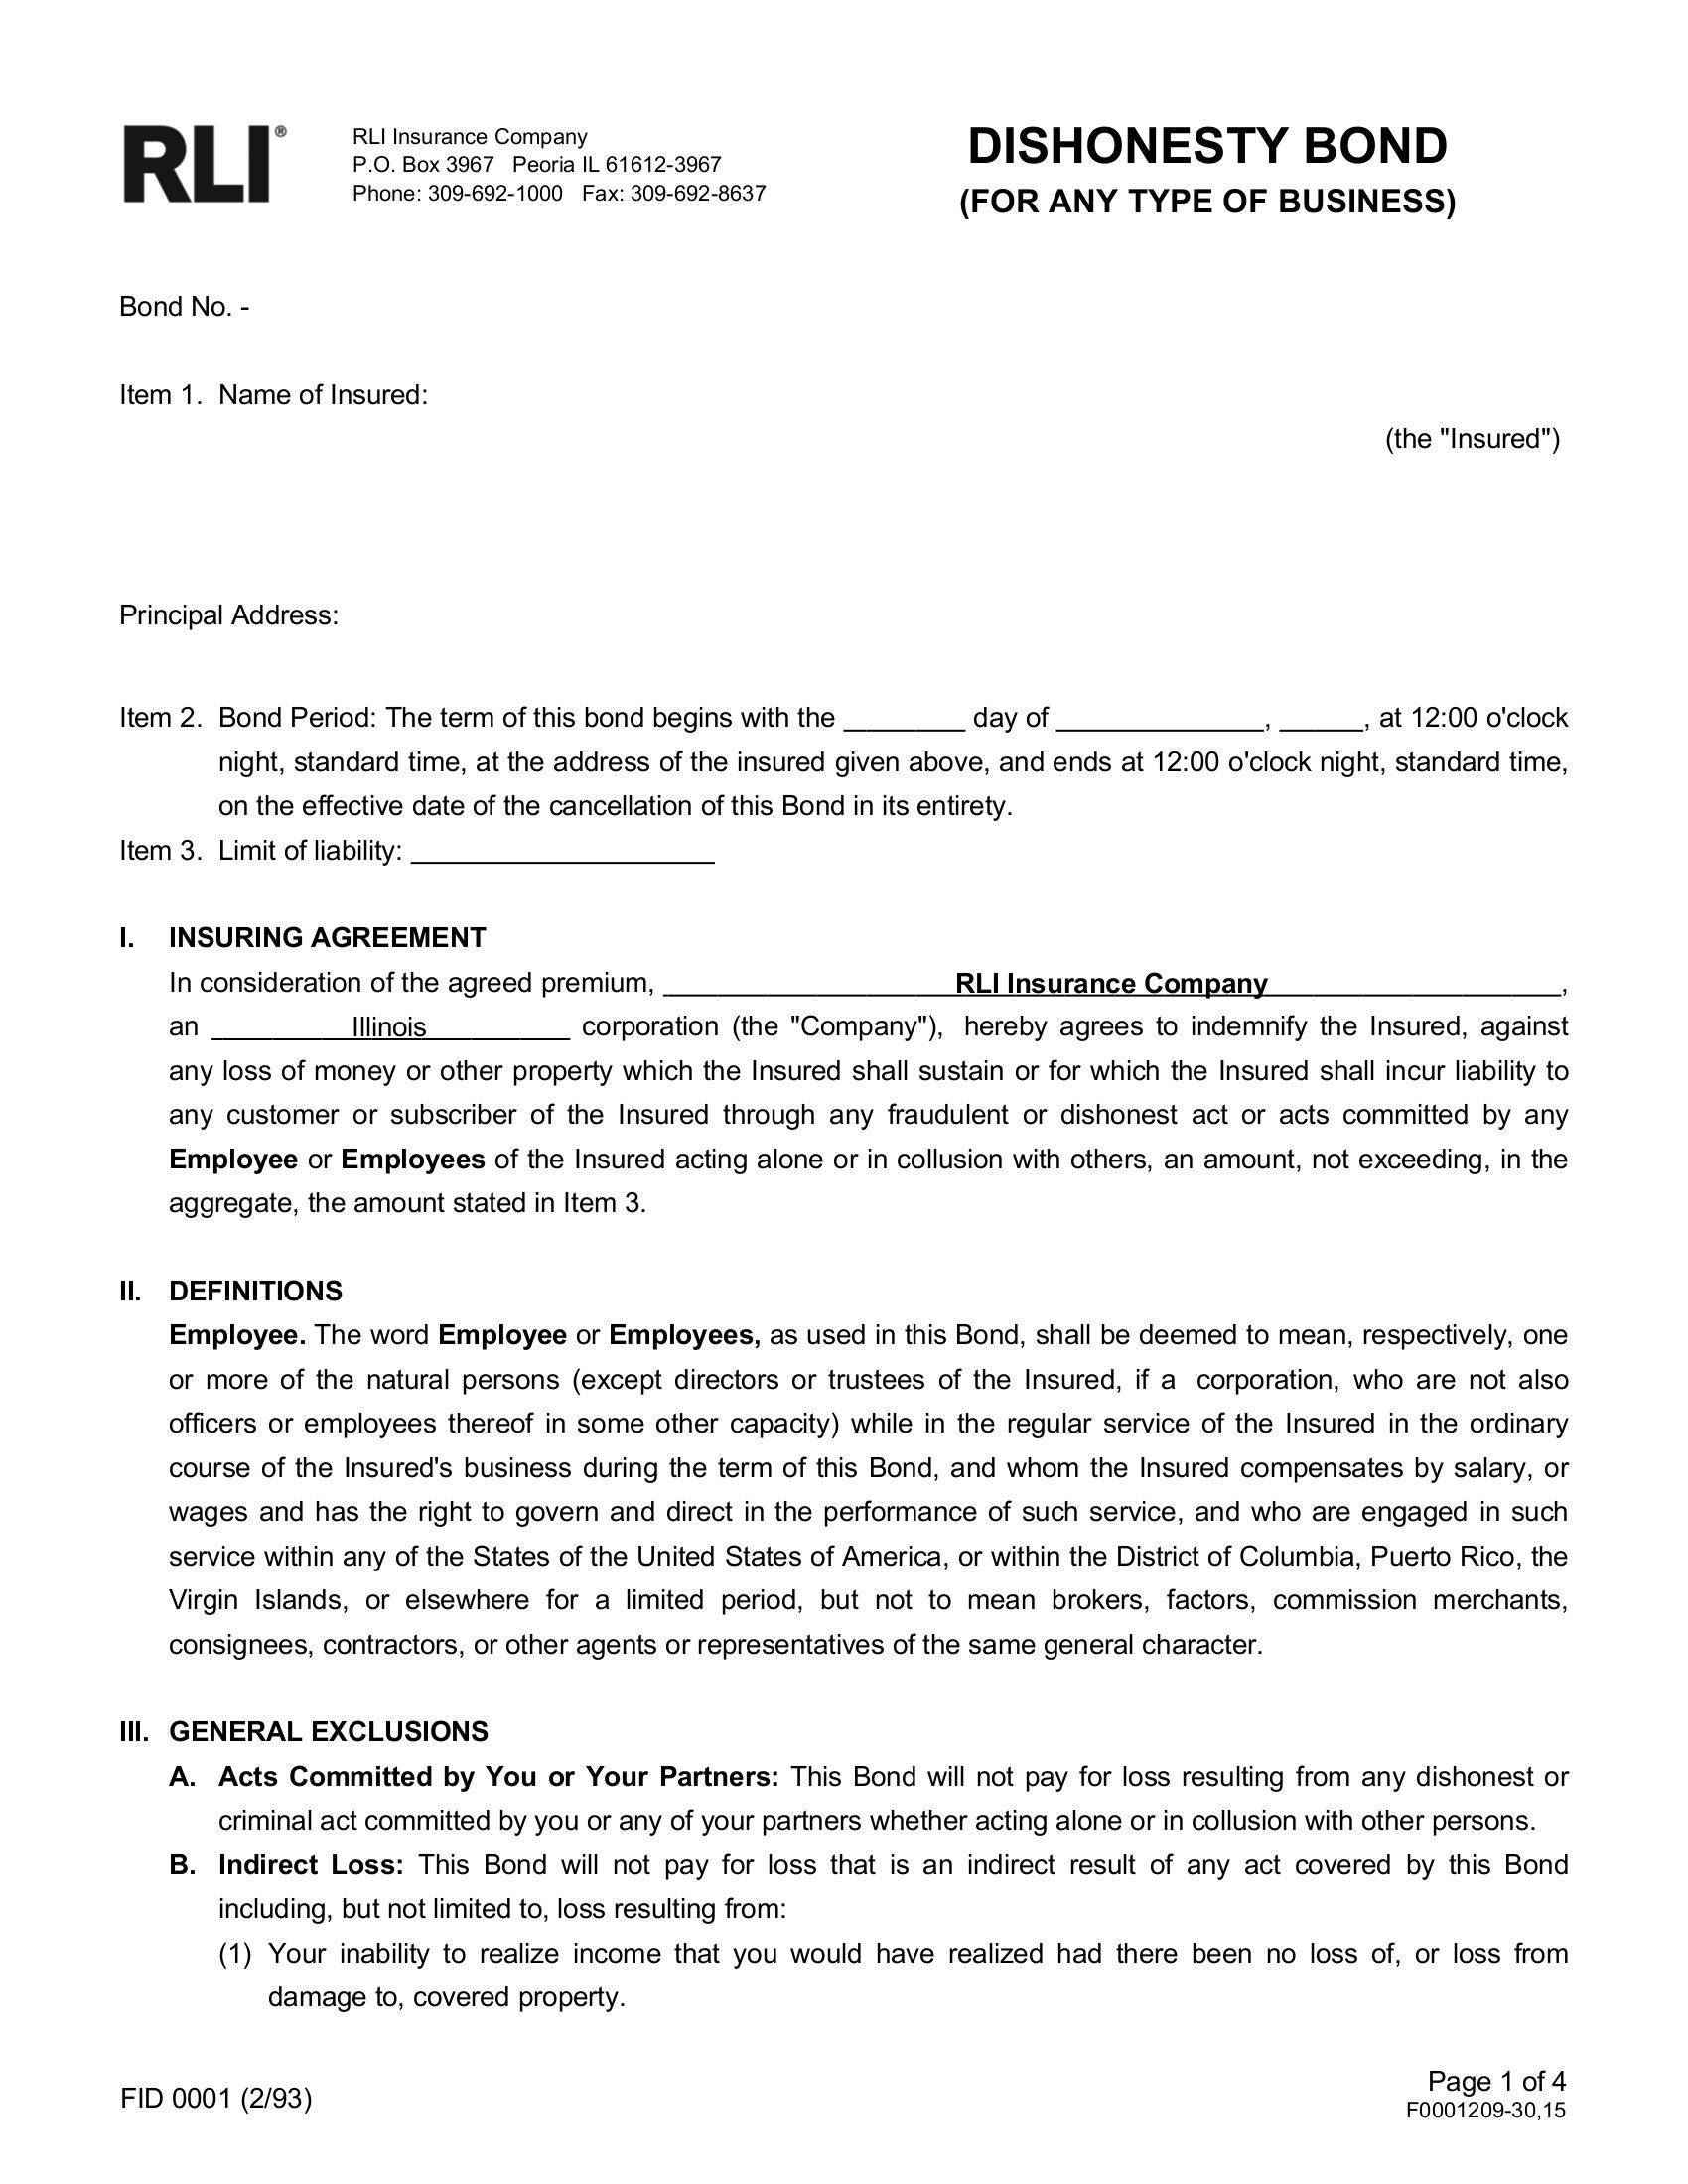 washington dc business services dishonesty surety bond | surety